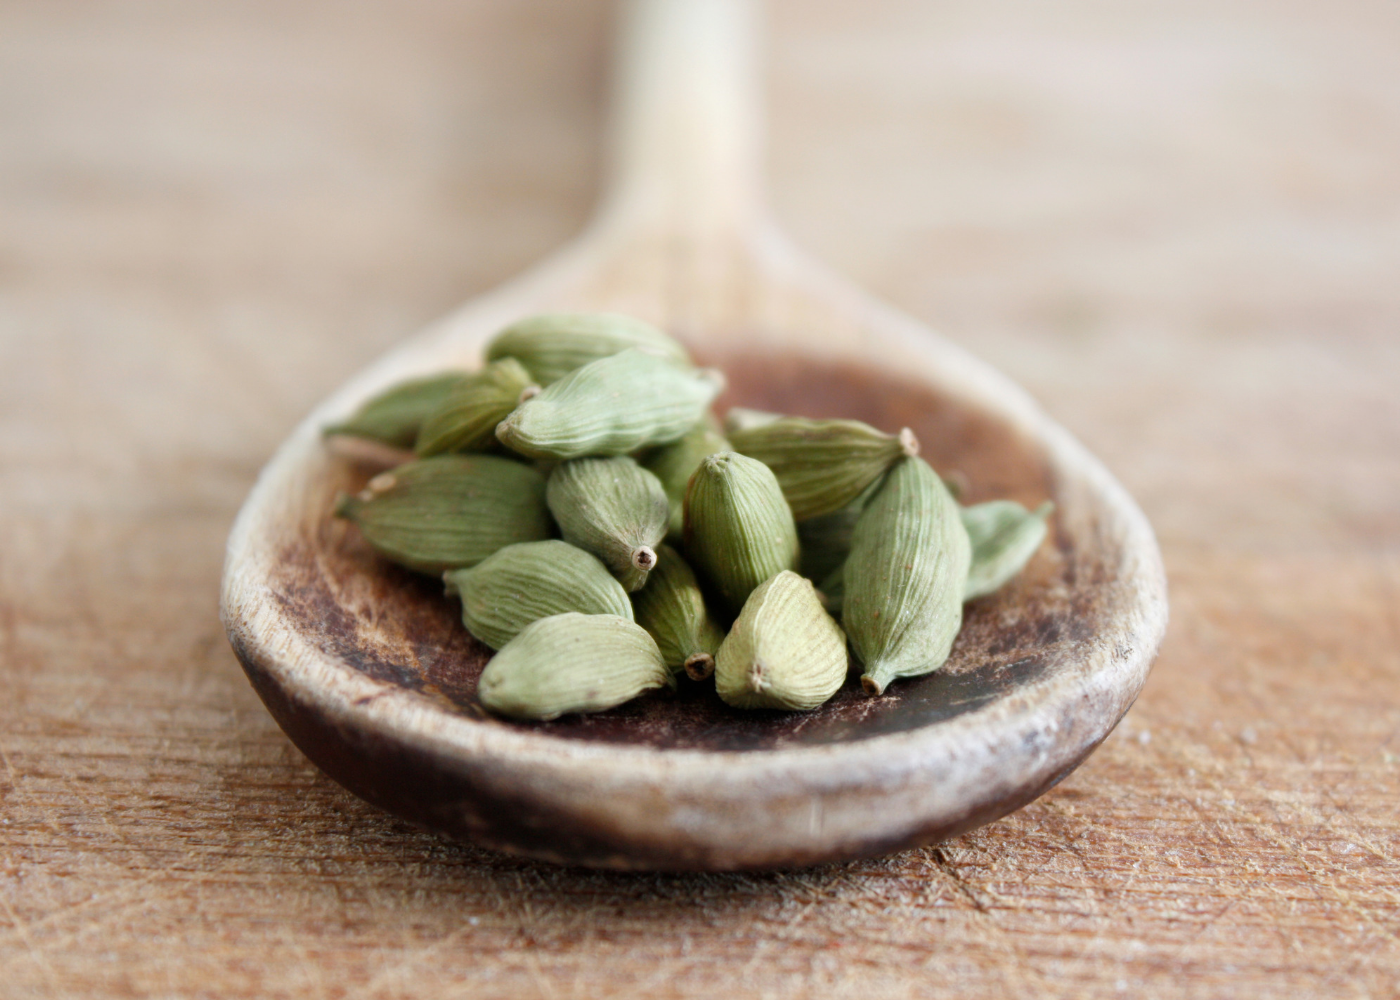 8 Uses Benefits Of Cardamom Essential Oil Dr Sara O Connell